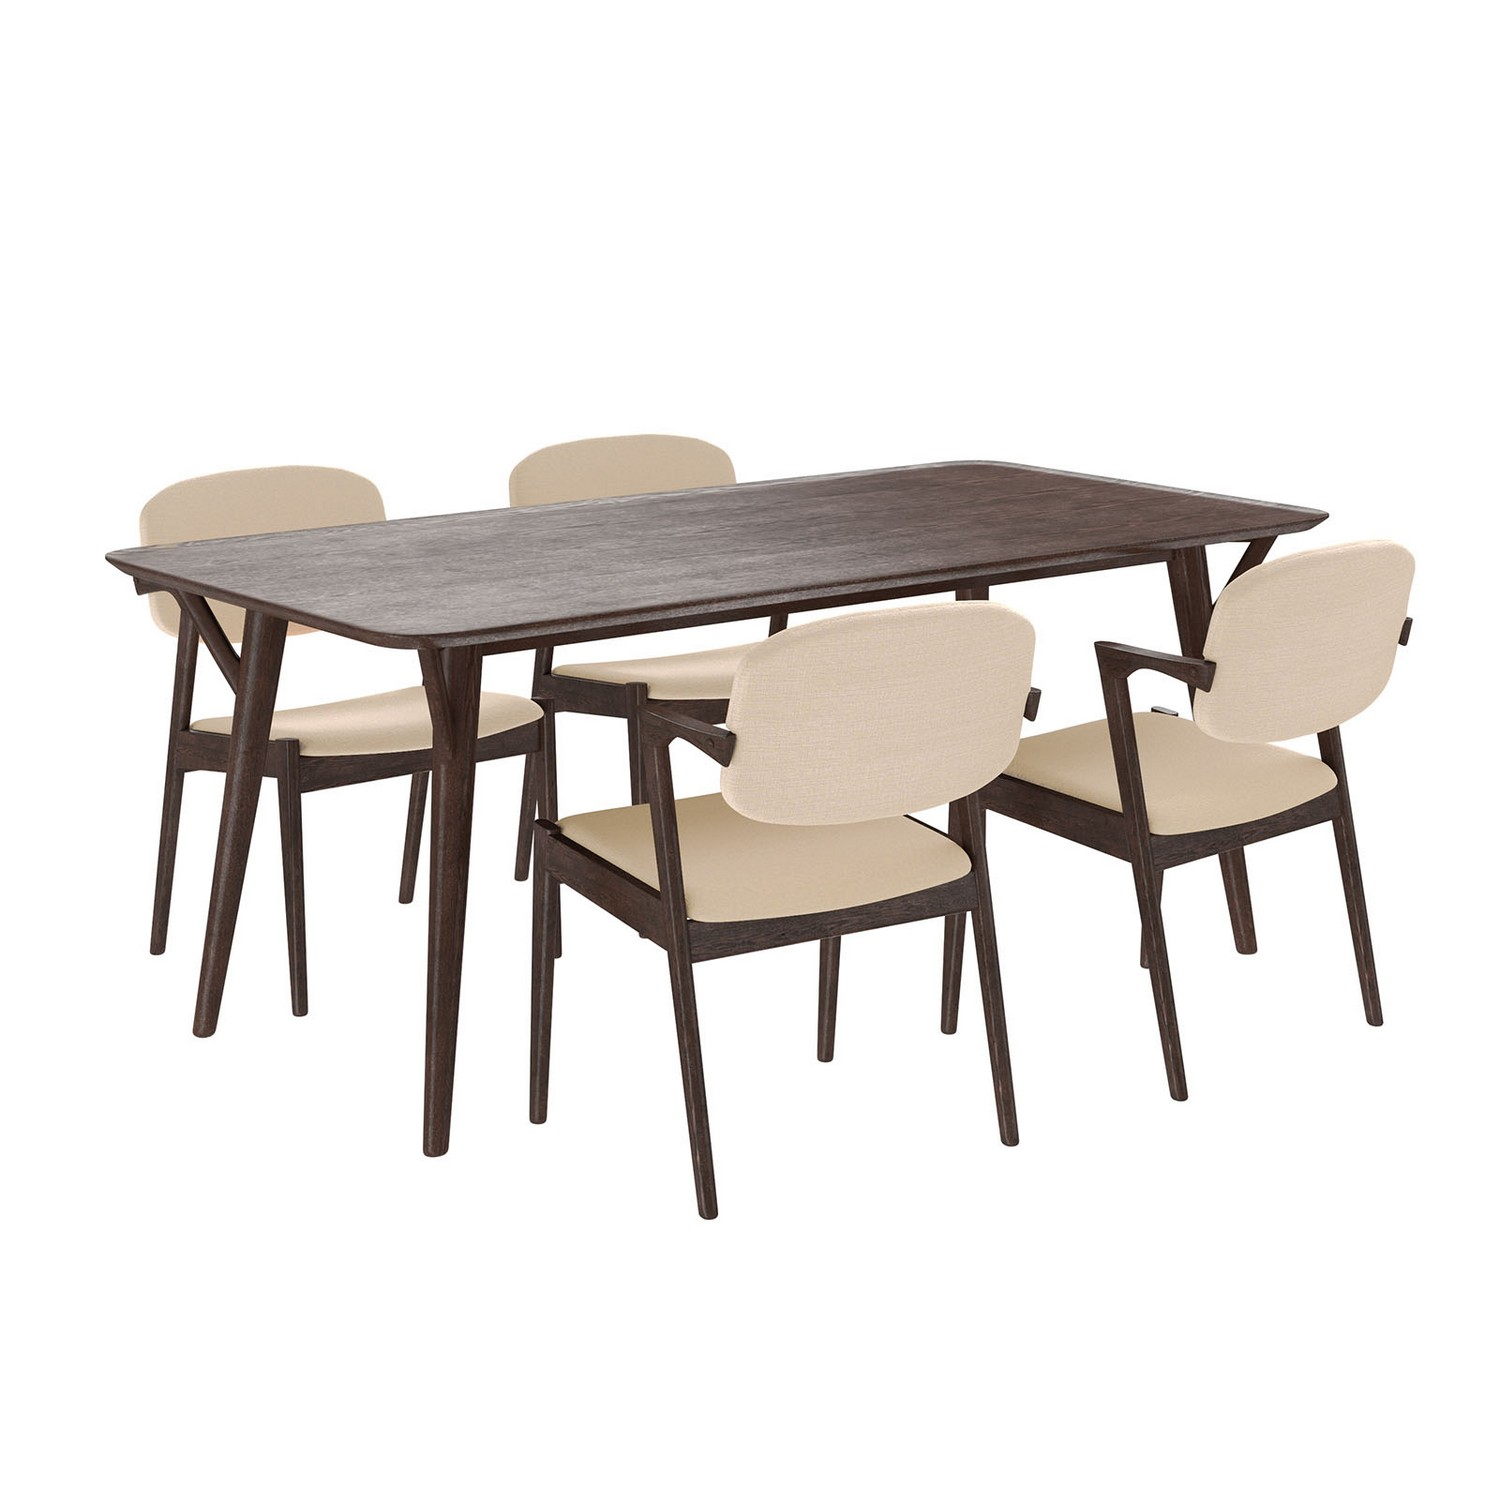 Modway Mid-Century Dining Set Wood Set of 5 - Walnut Beige